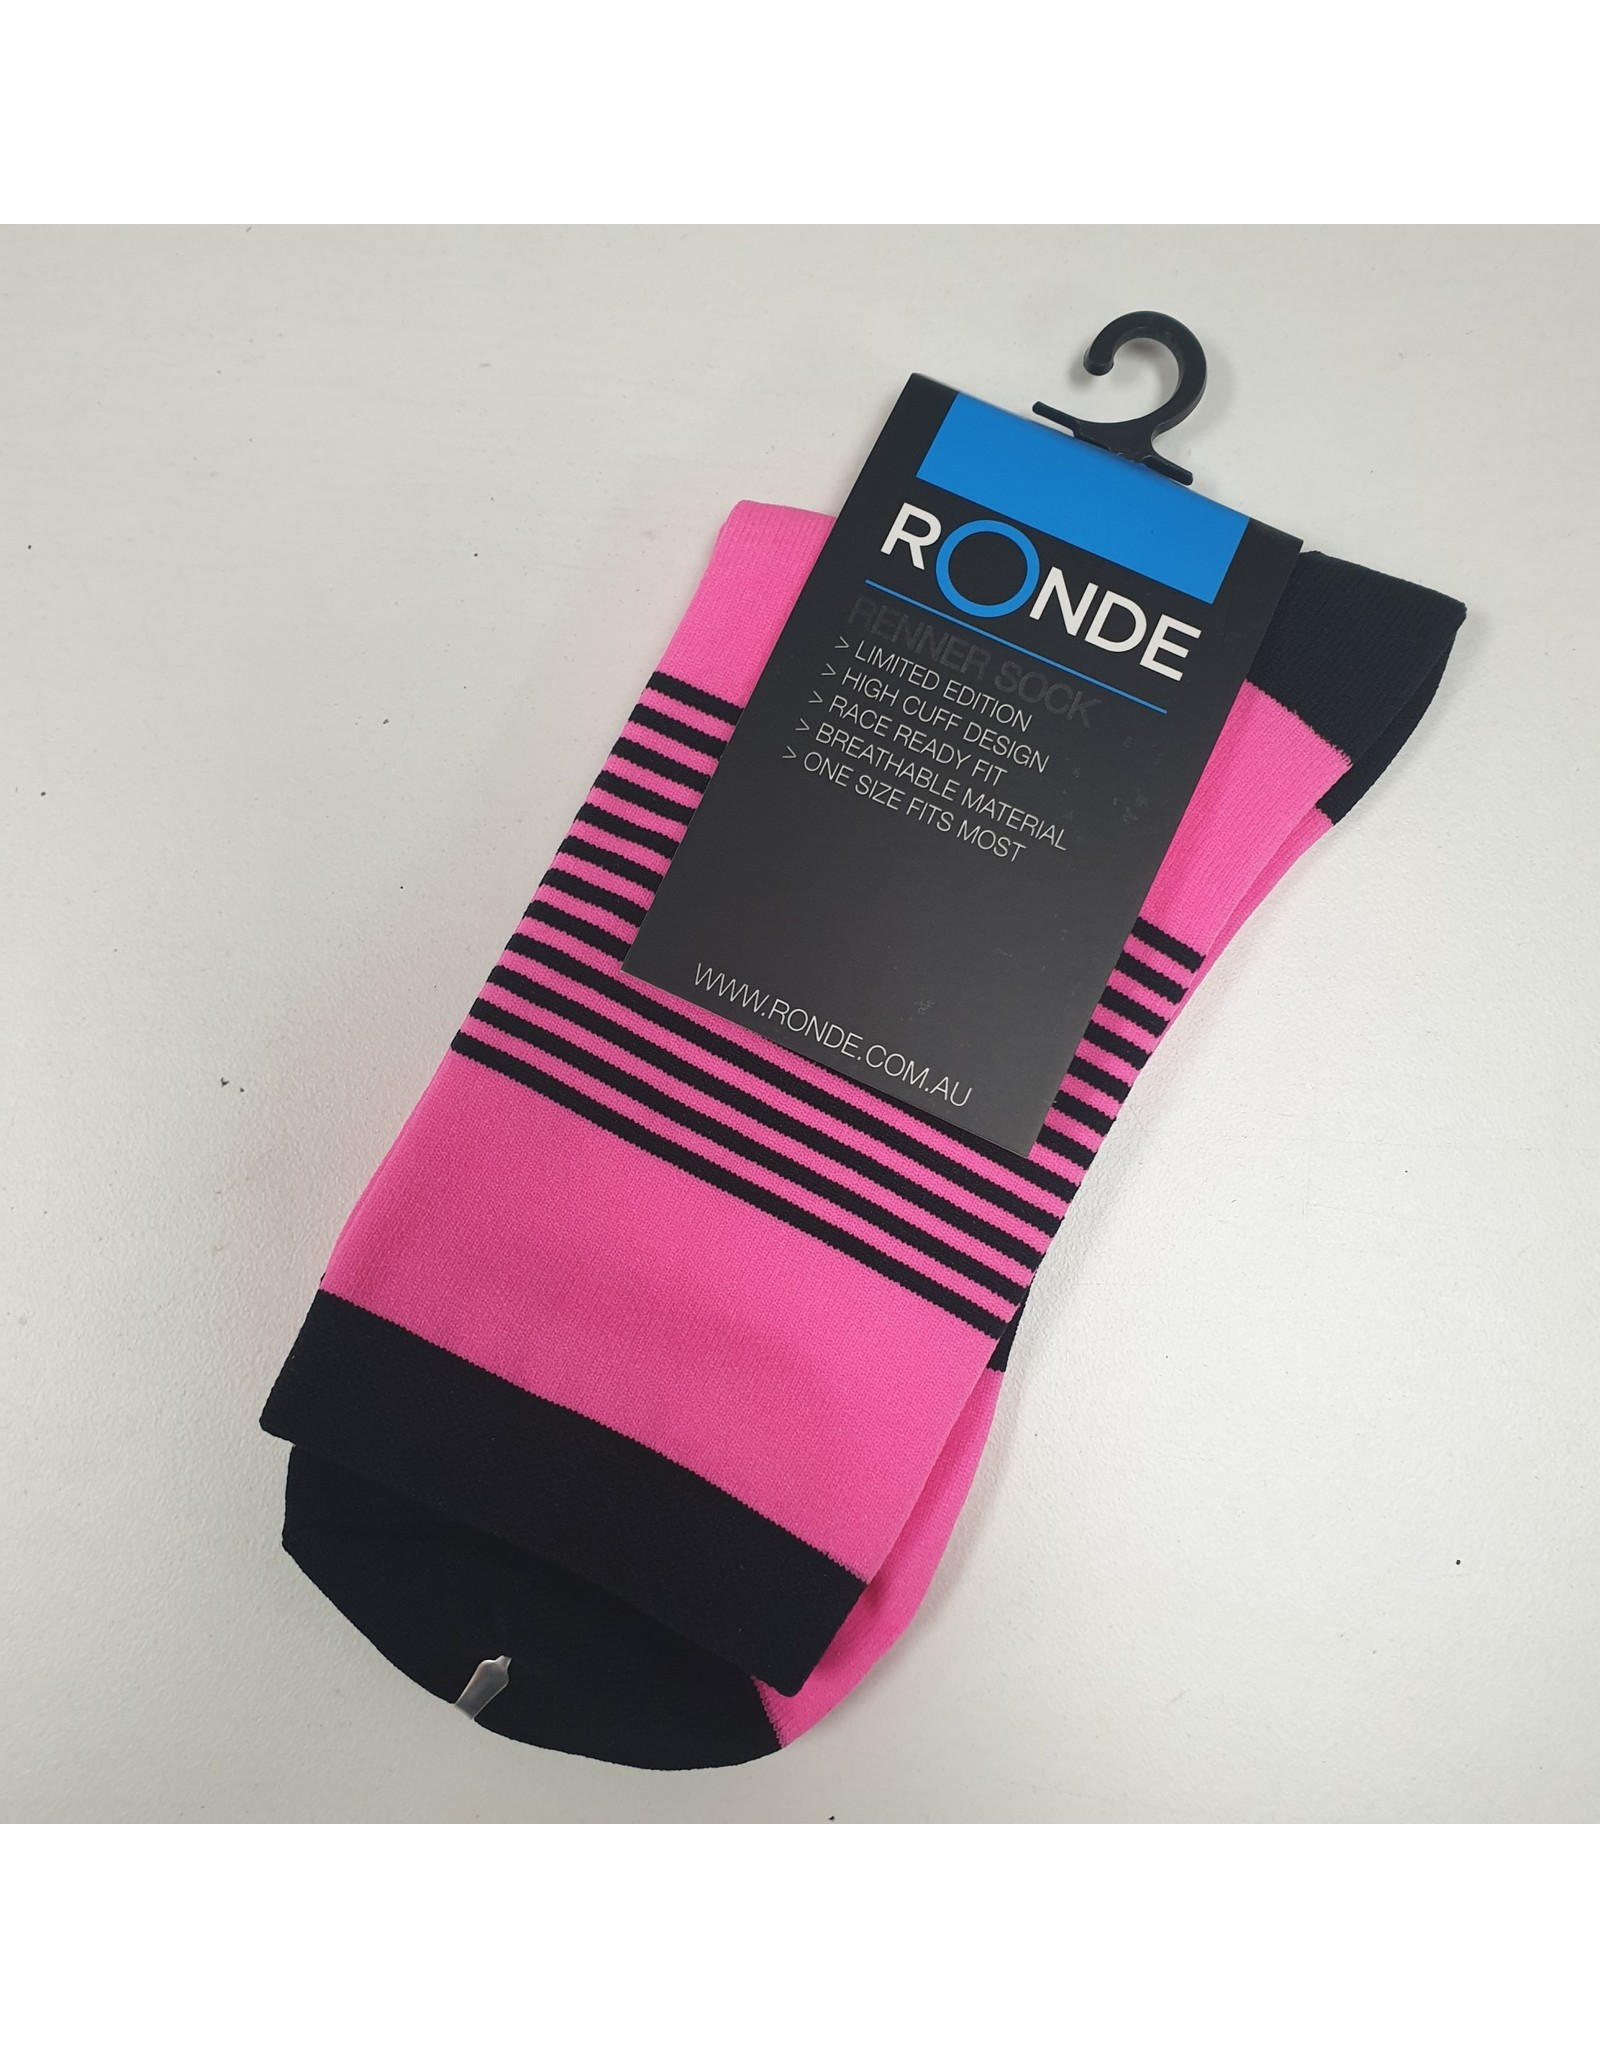 Ronde Renner Cycling Socks